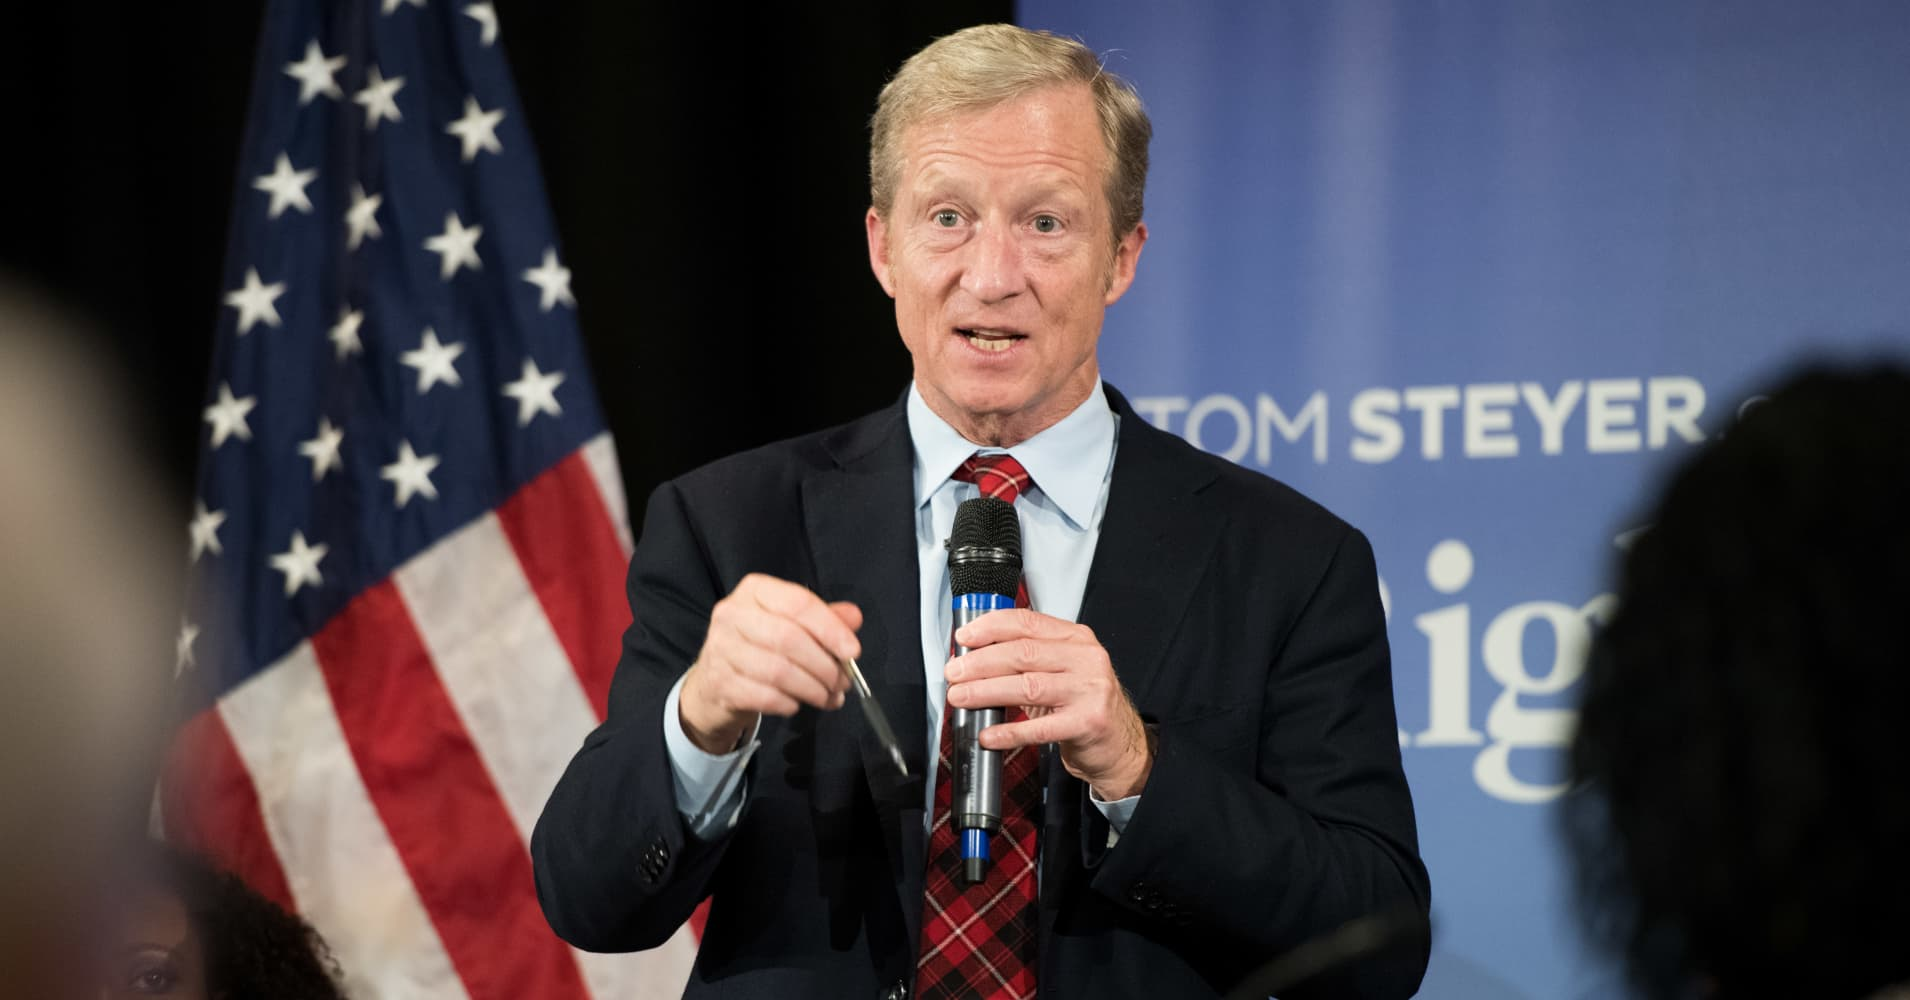 Billionaire Tom Steyer will only support Democratic presidential candidates who want to impeach President Trump